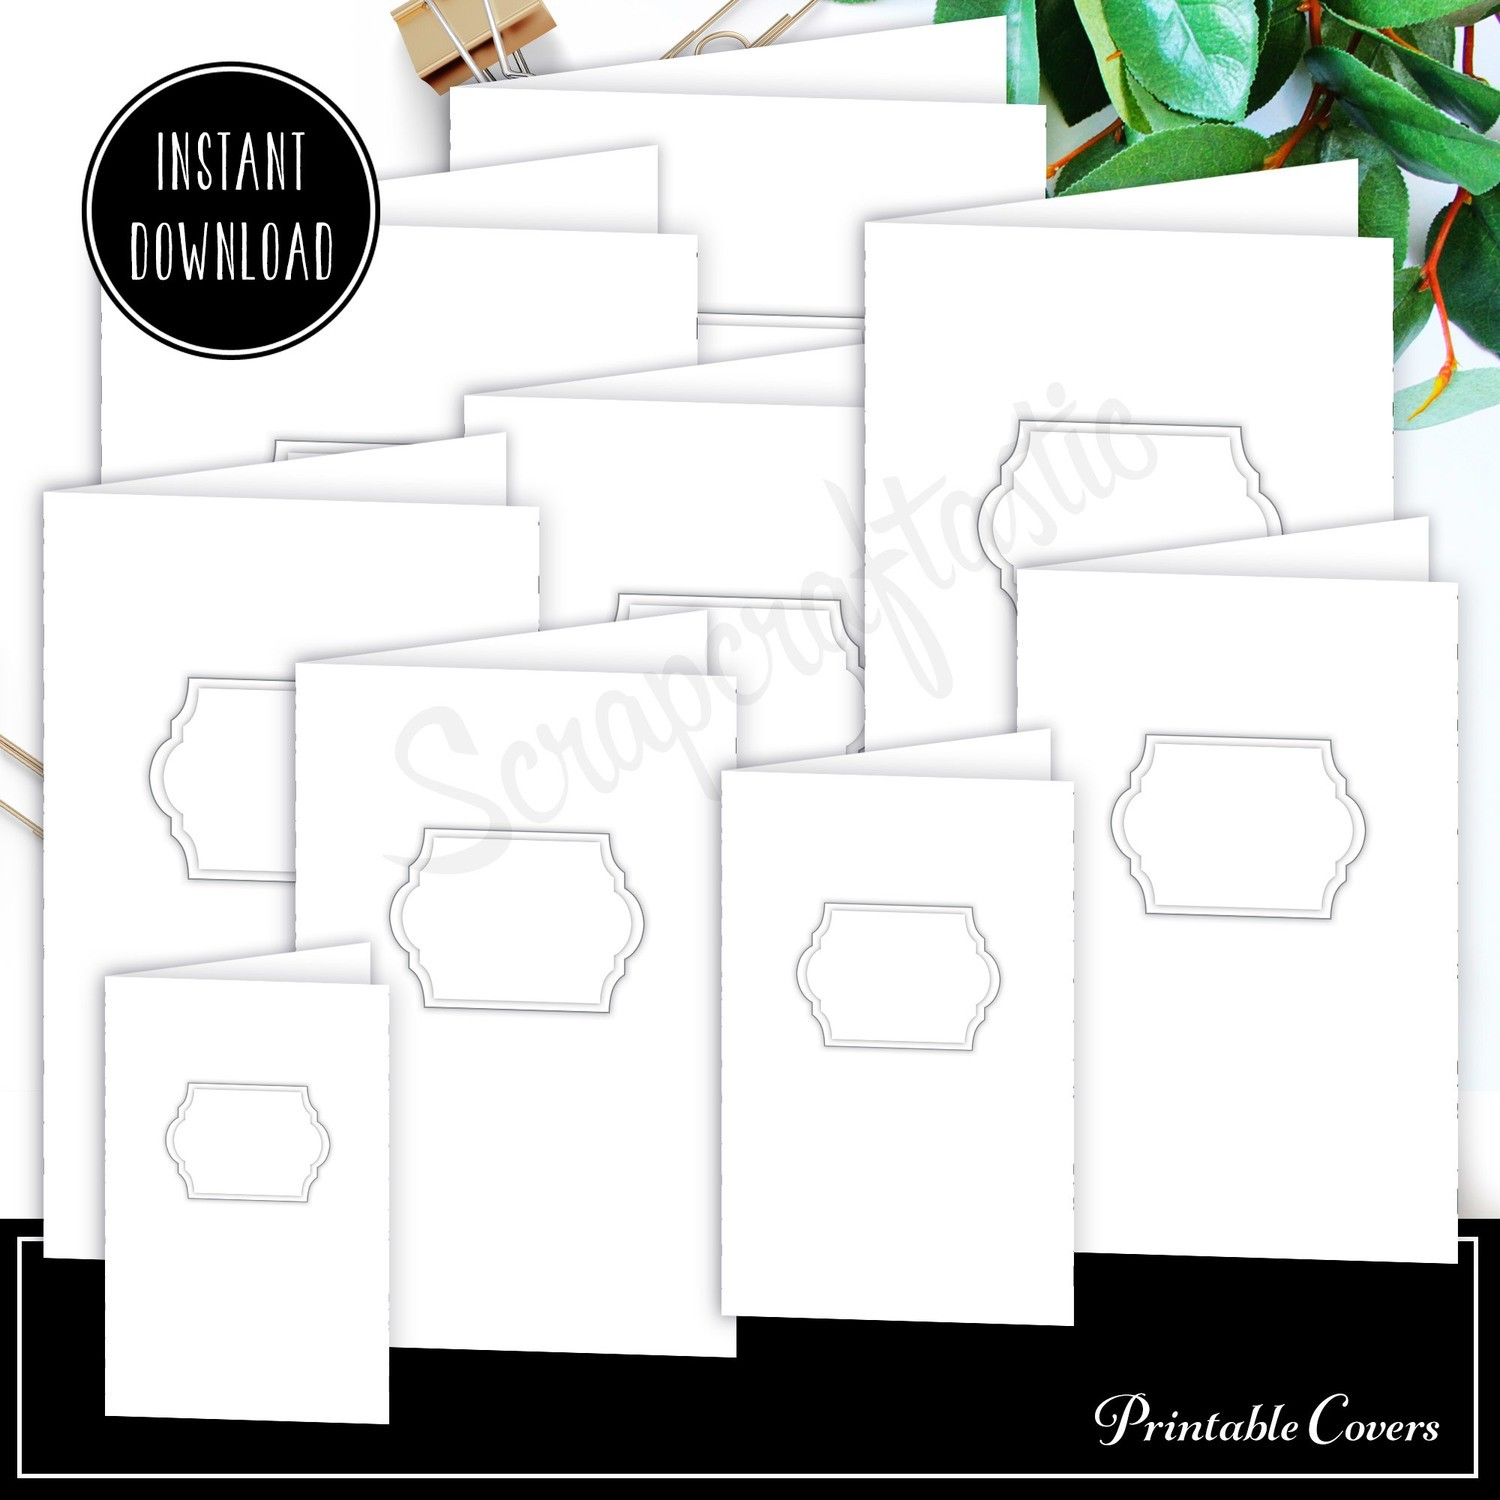 Basic Covers for Traveler's Notebooks, Rings and Disc Bound Inserts